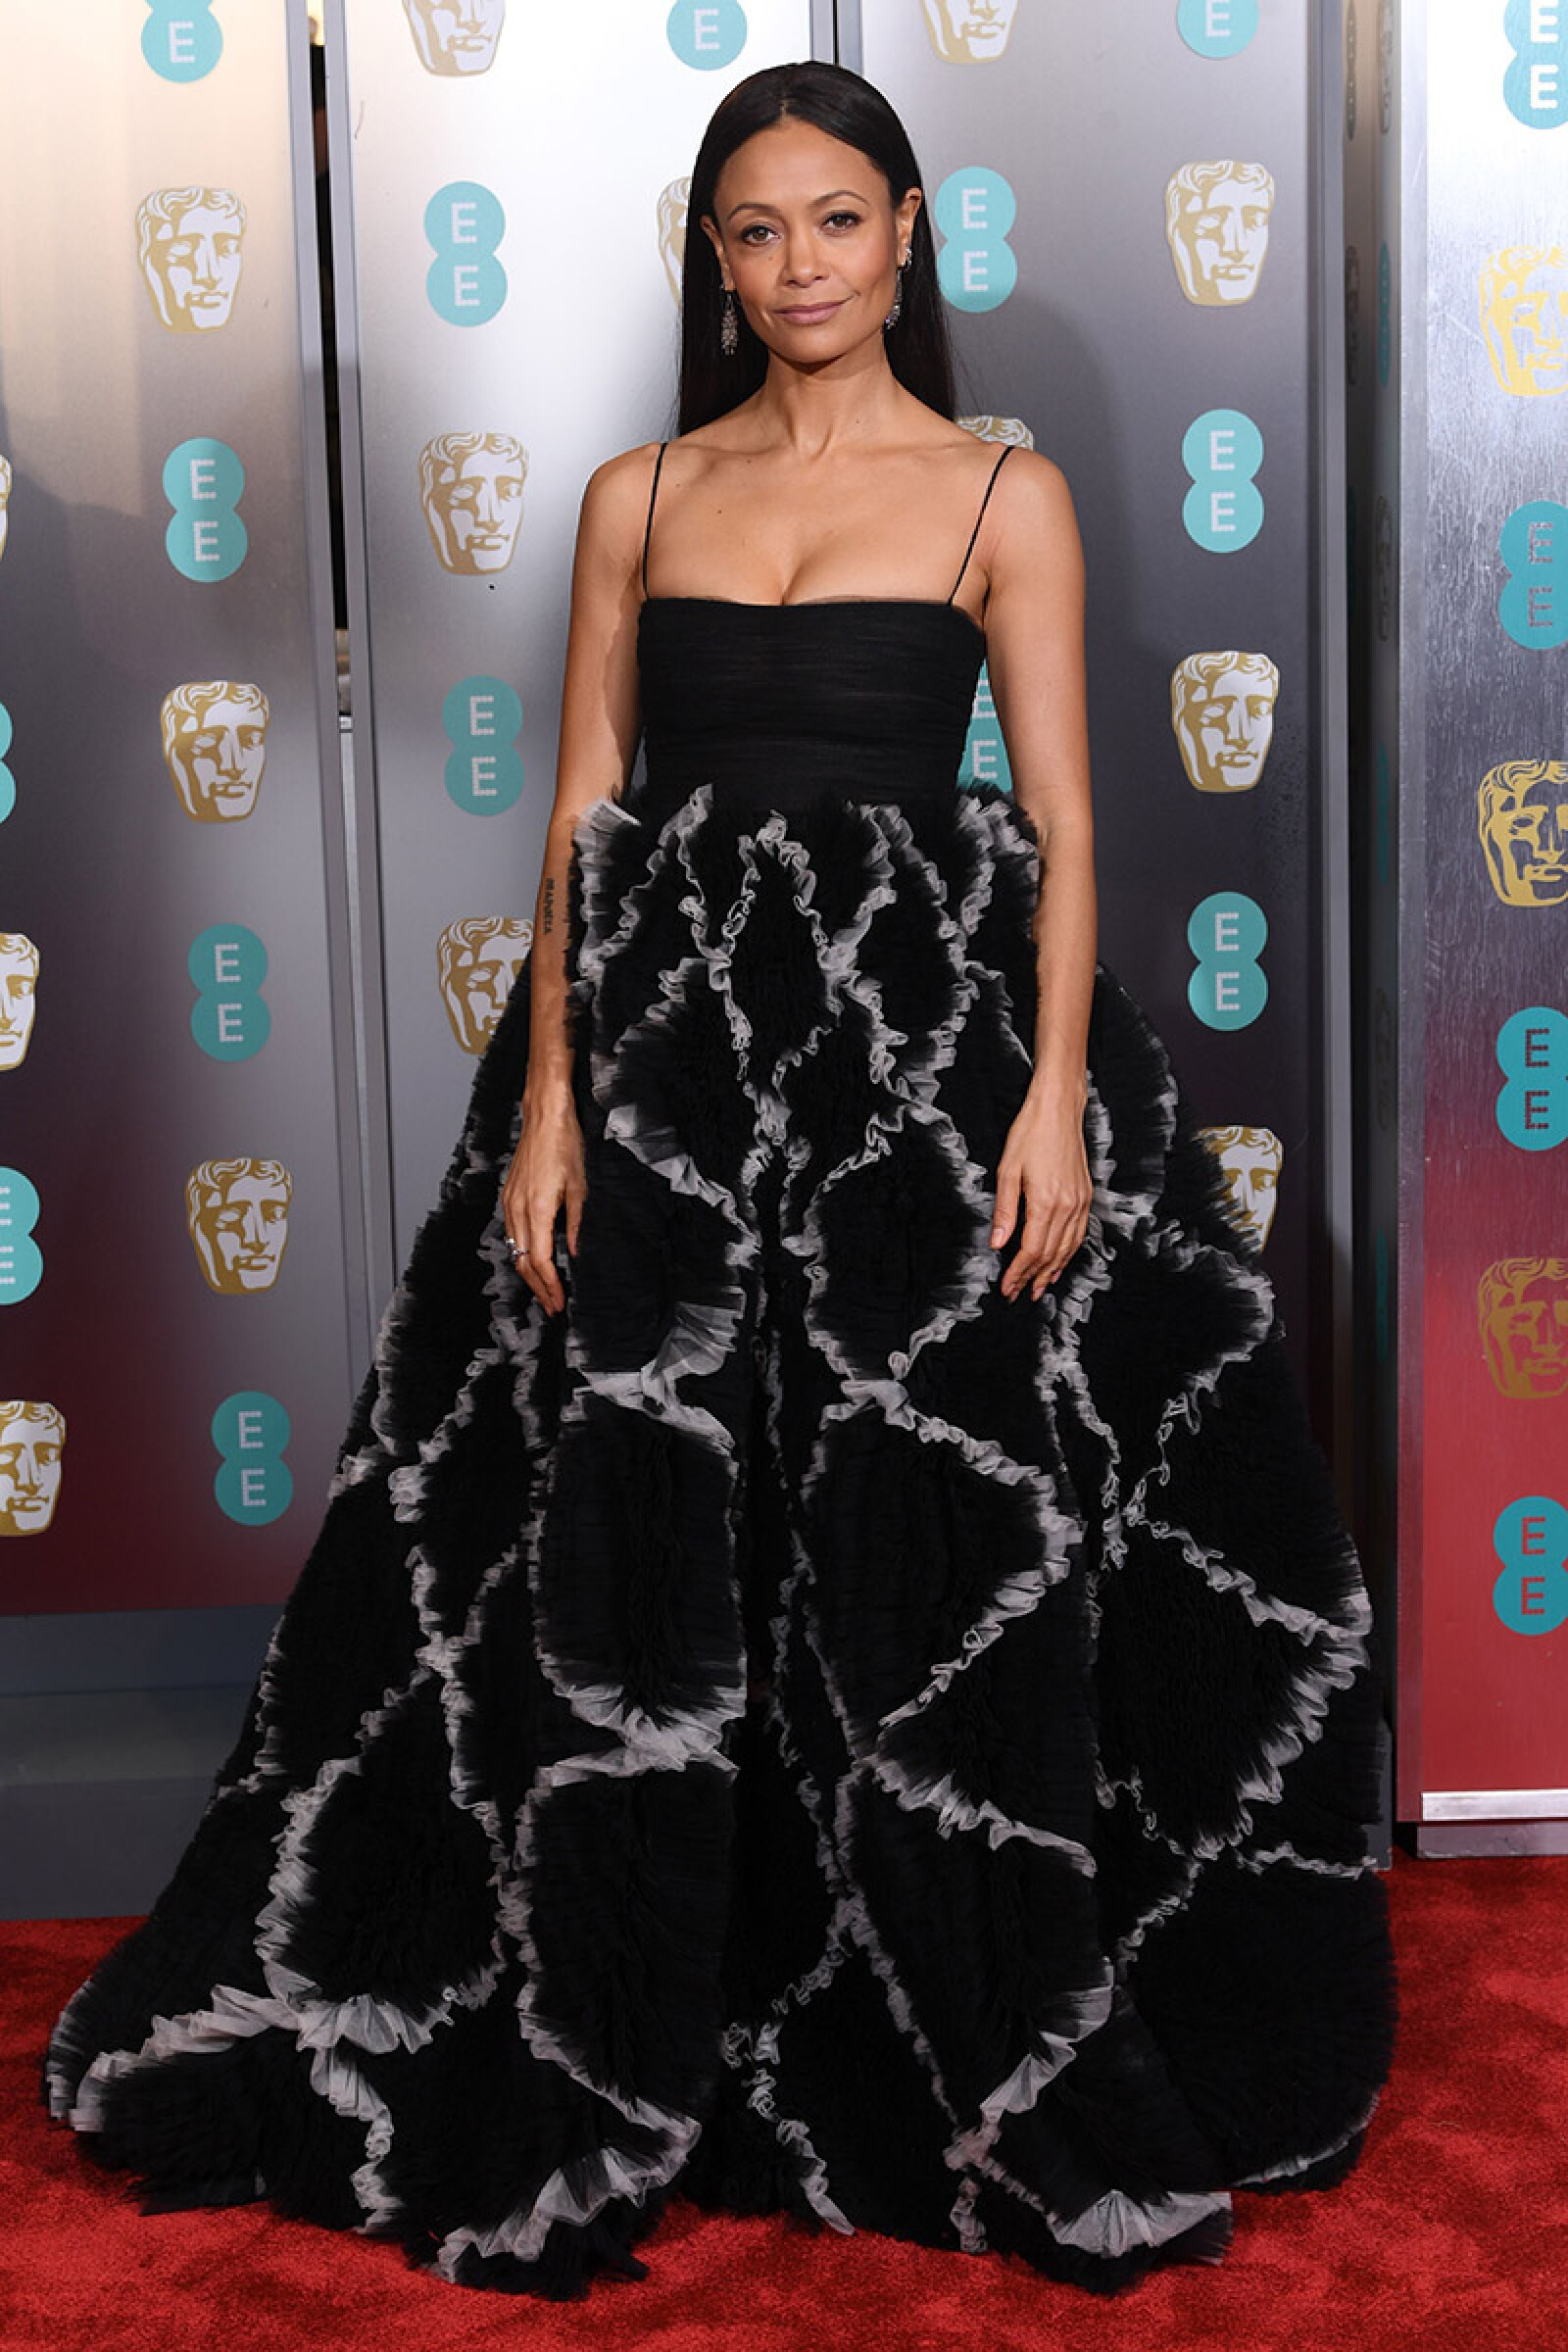 72nd British Academy Film Awards, Arrivals, Royal Albert Hall, London, UK - 10 Feb 2019